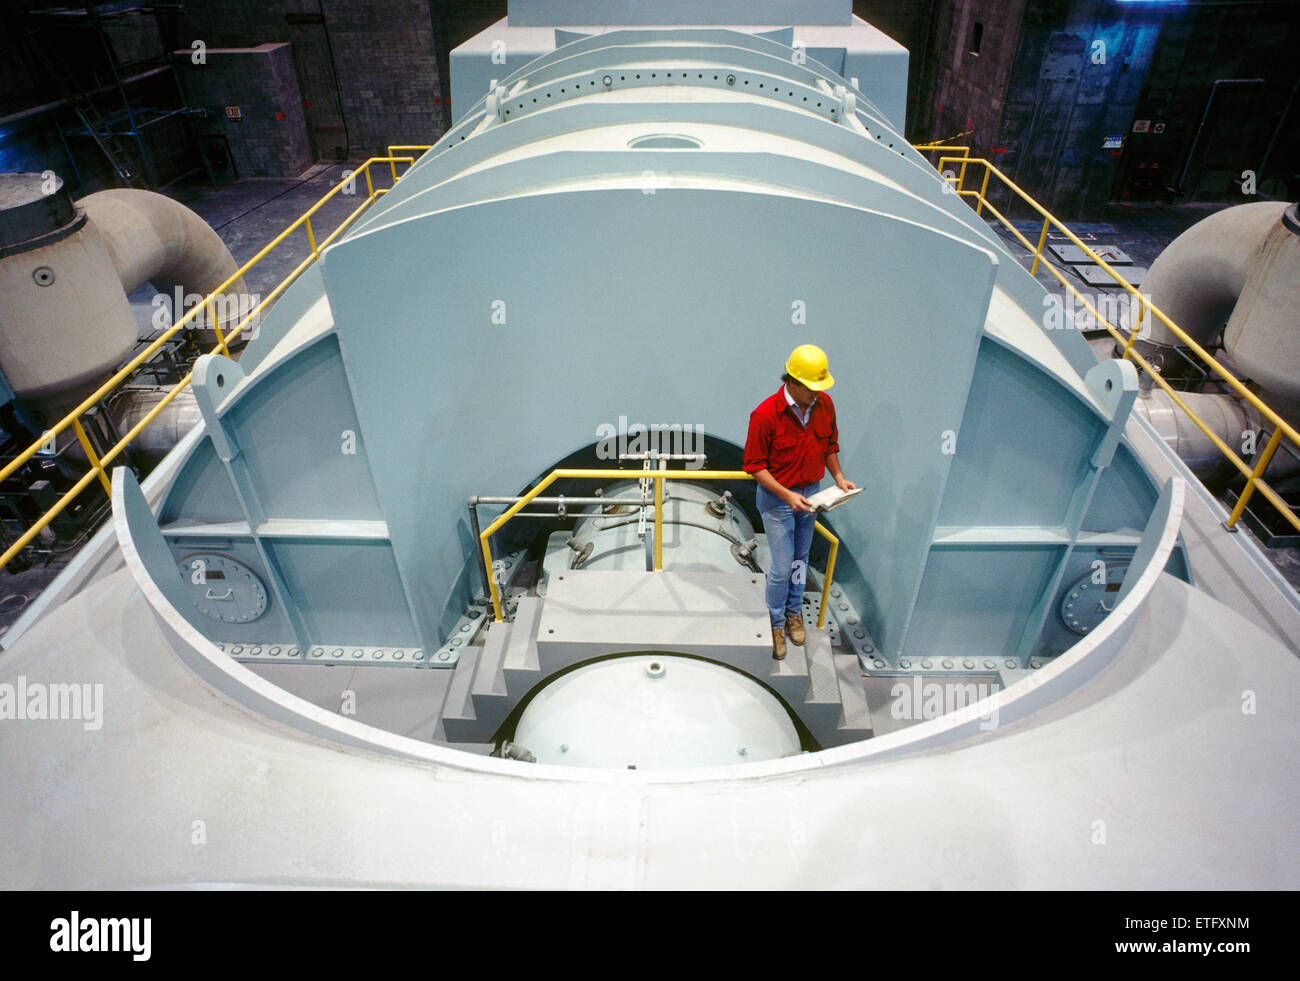 Male engineer inspecting drawings near a steam turbine, nuclear power plant in Pennsylvania, USA - Stock Image